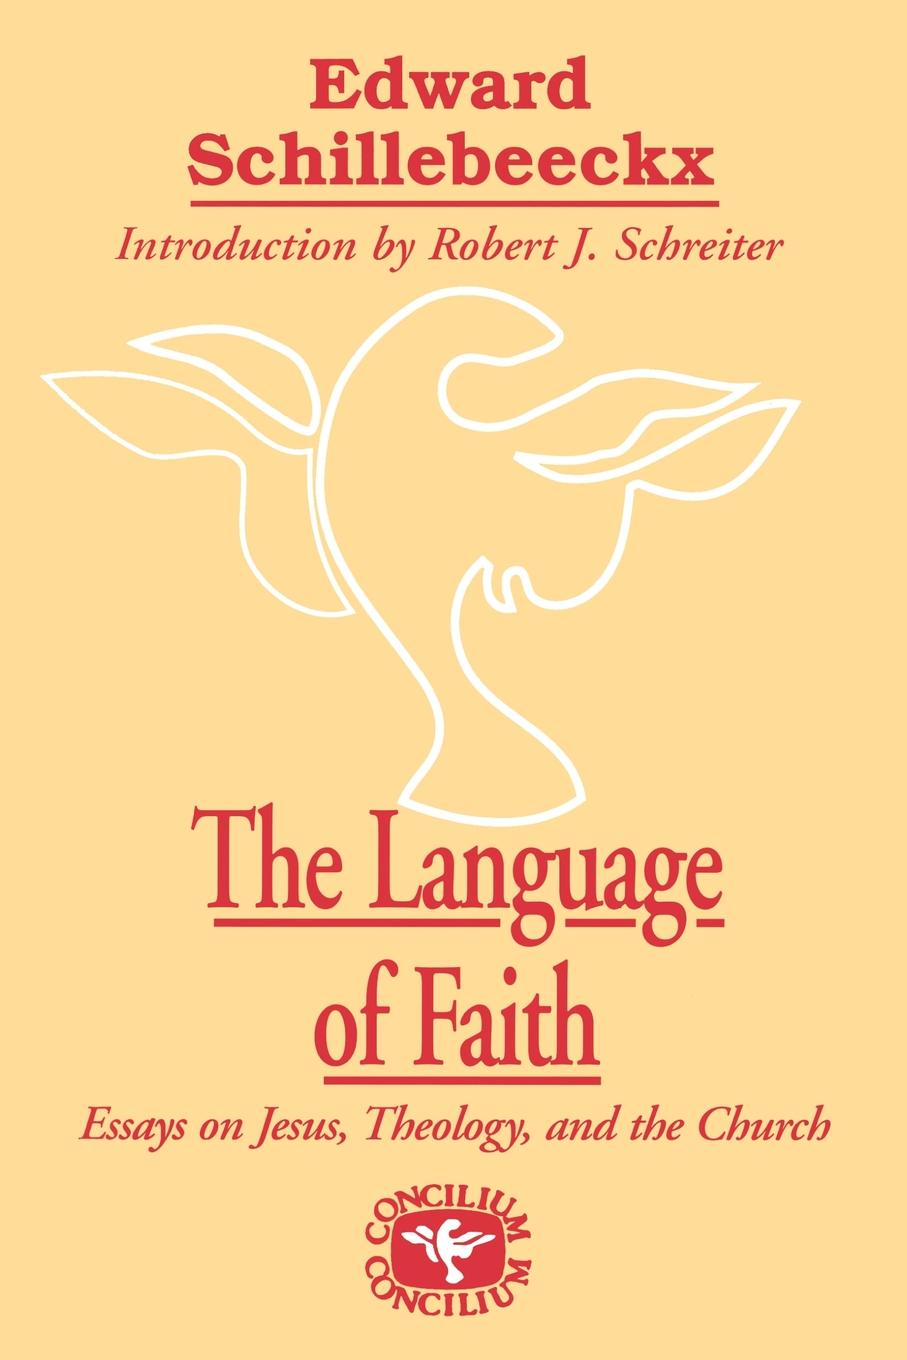 Edward Schillebeeckx The Language of Faith. Essays on Jesus, Theology and the Church ulrich zwingli edward j furcha the defense of the reformed faith